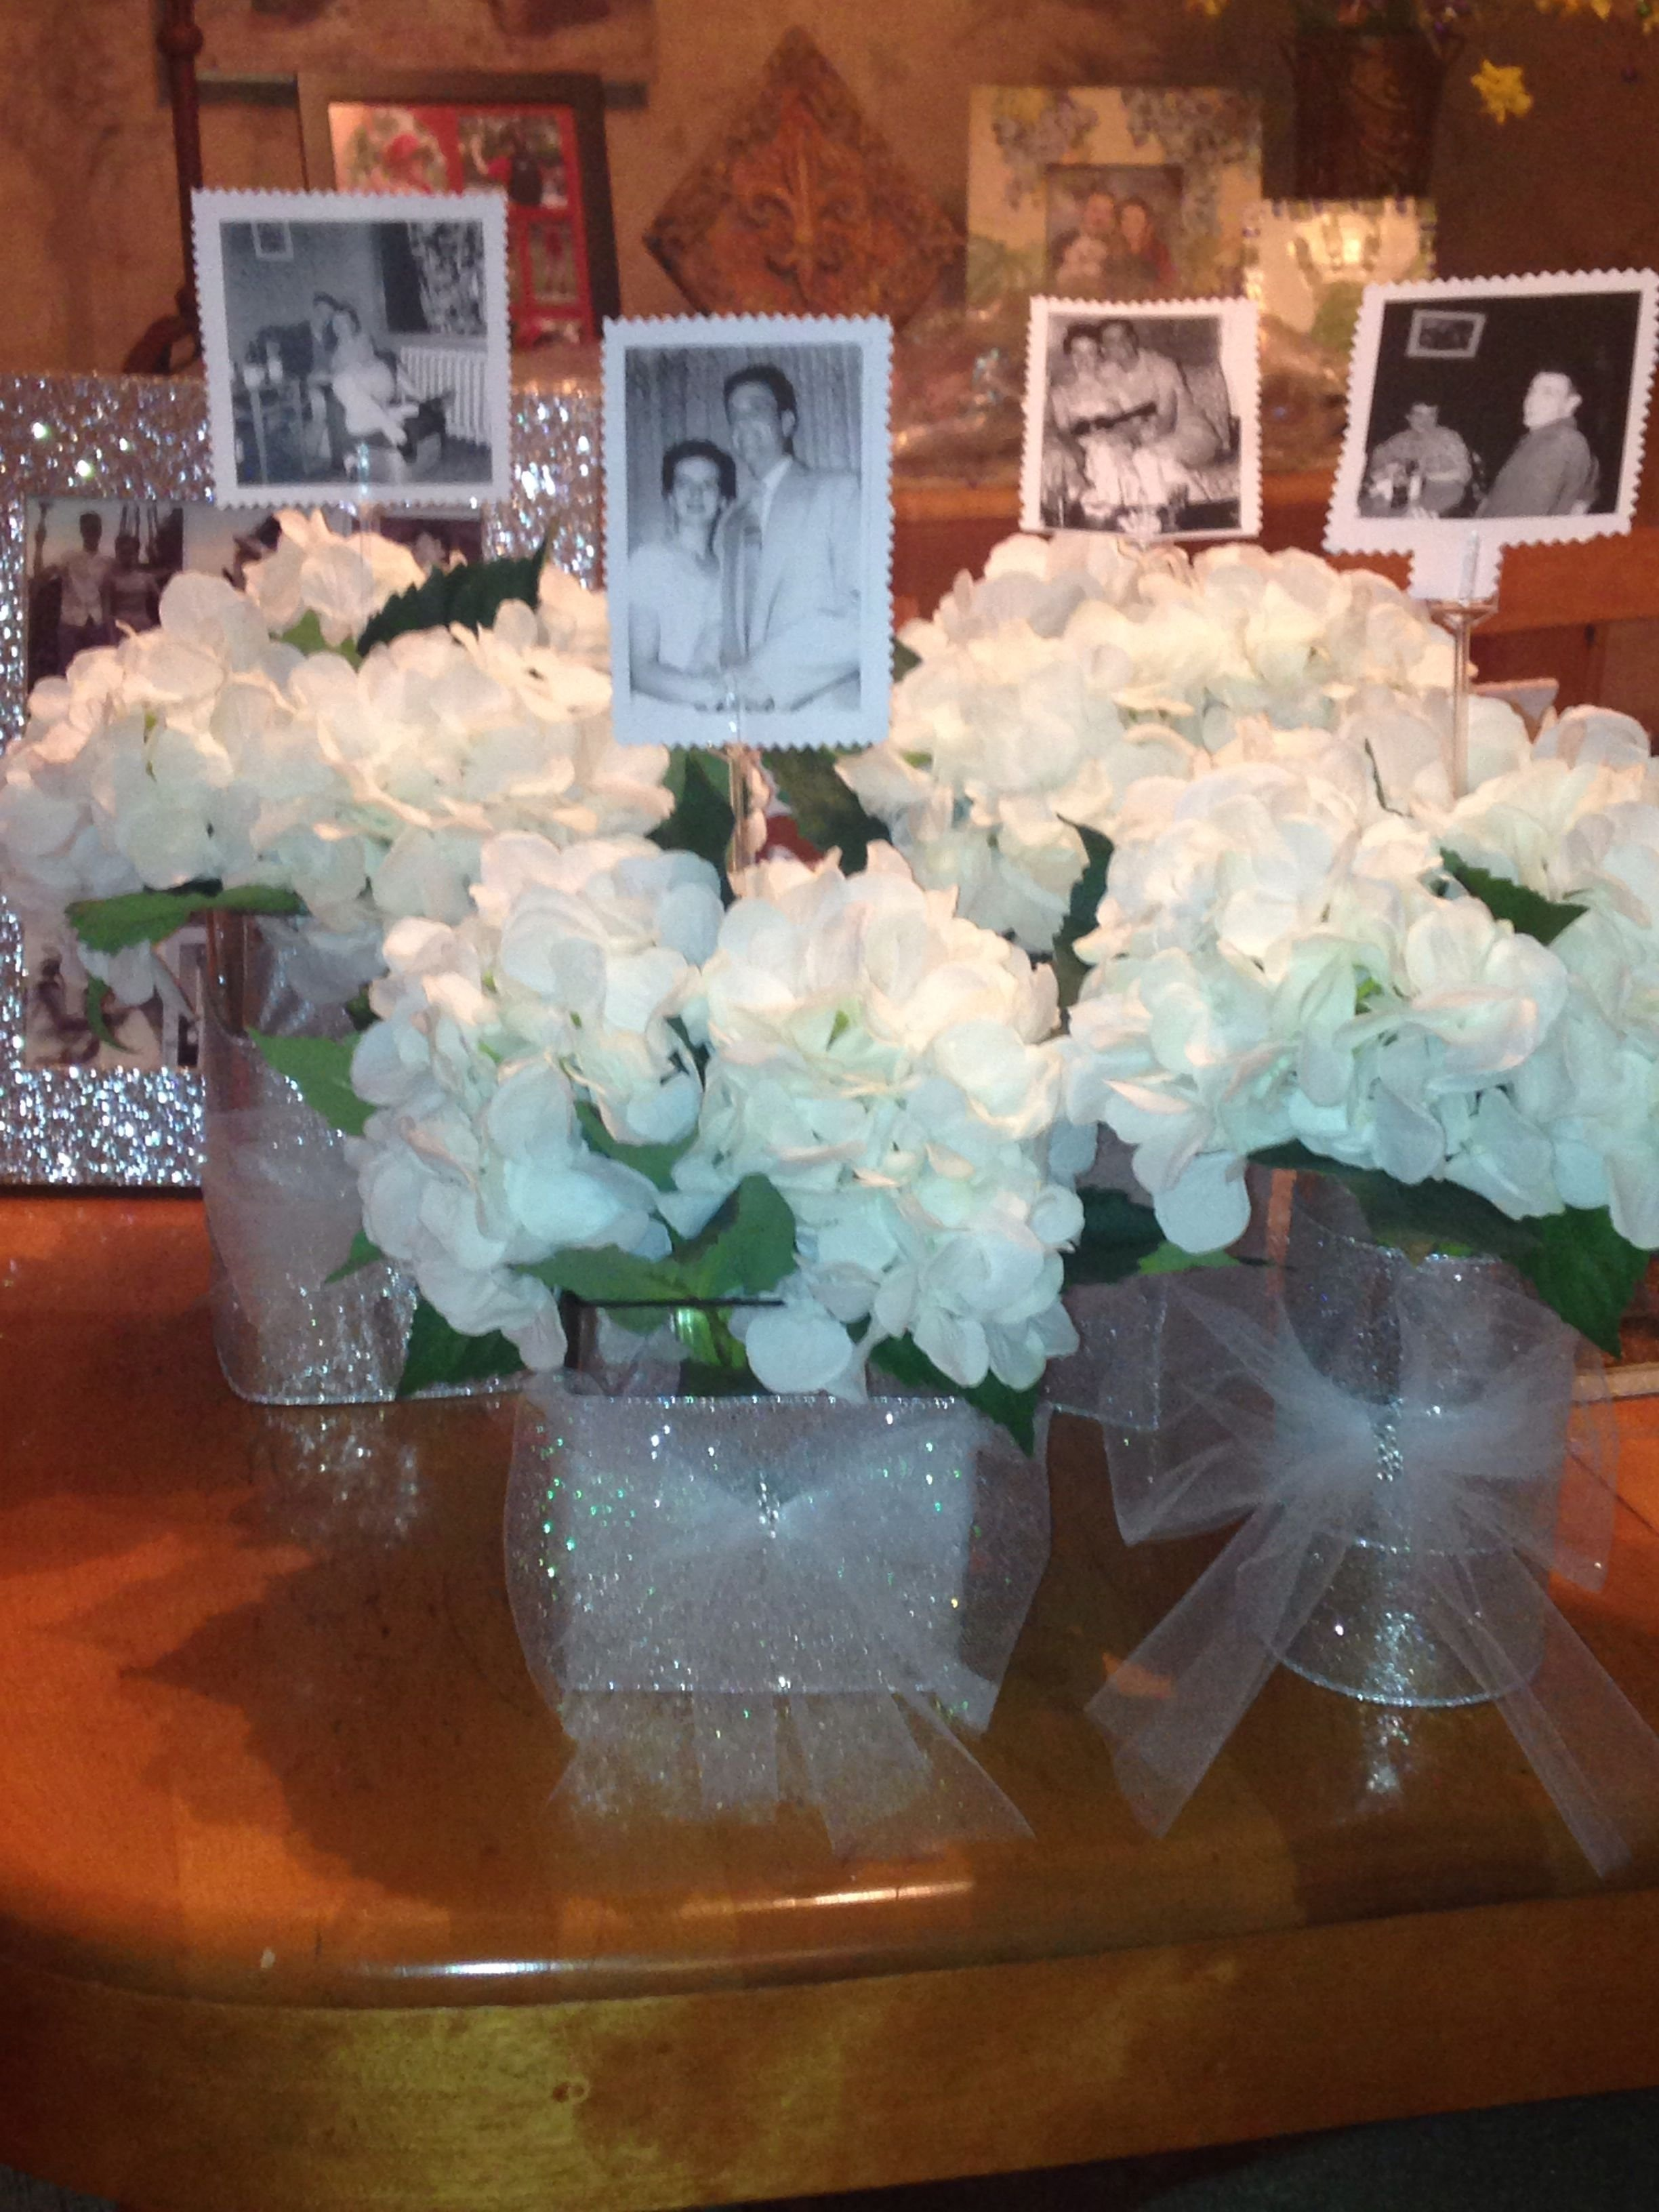 10 Great 60Th Wedding Anniversary Party Ideas 60th anniversary party idea for table centerpiece put a picture of 2020